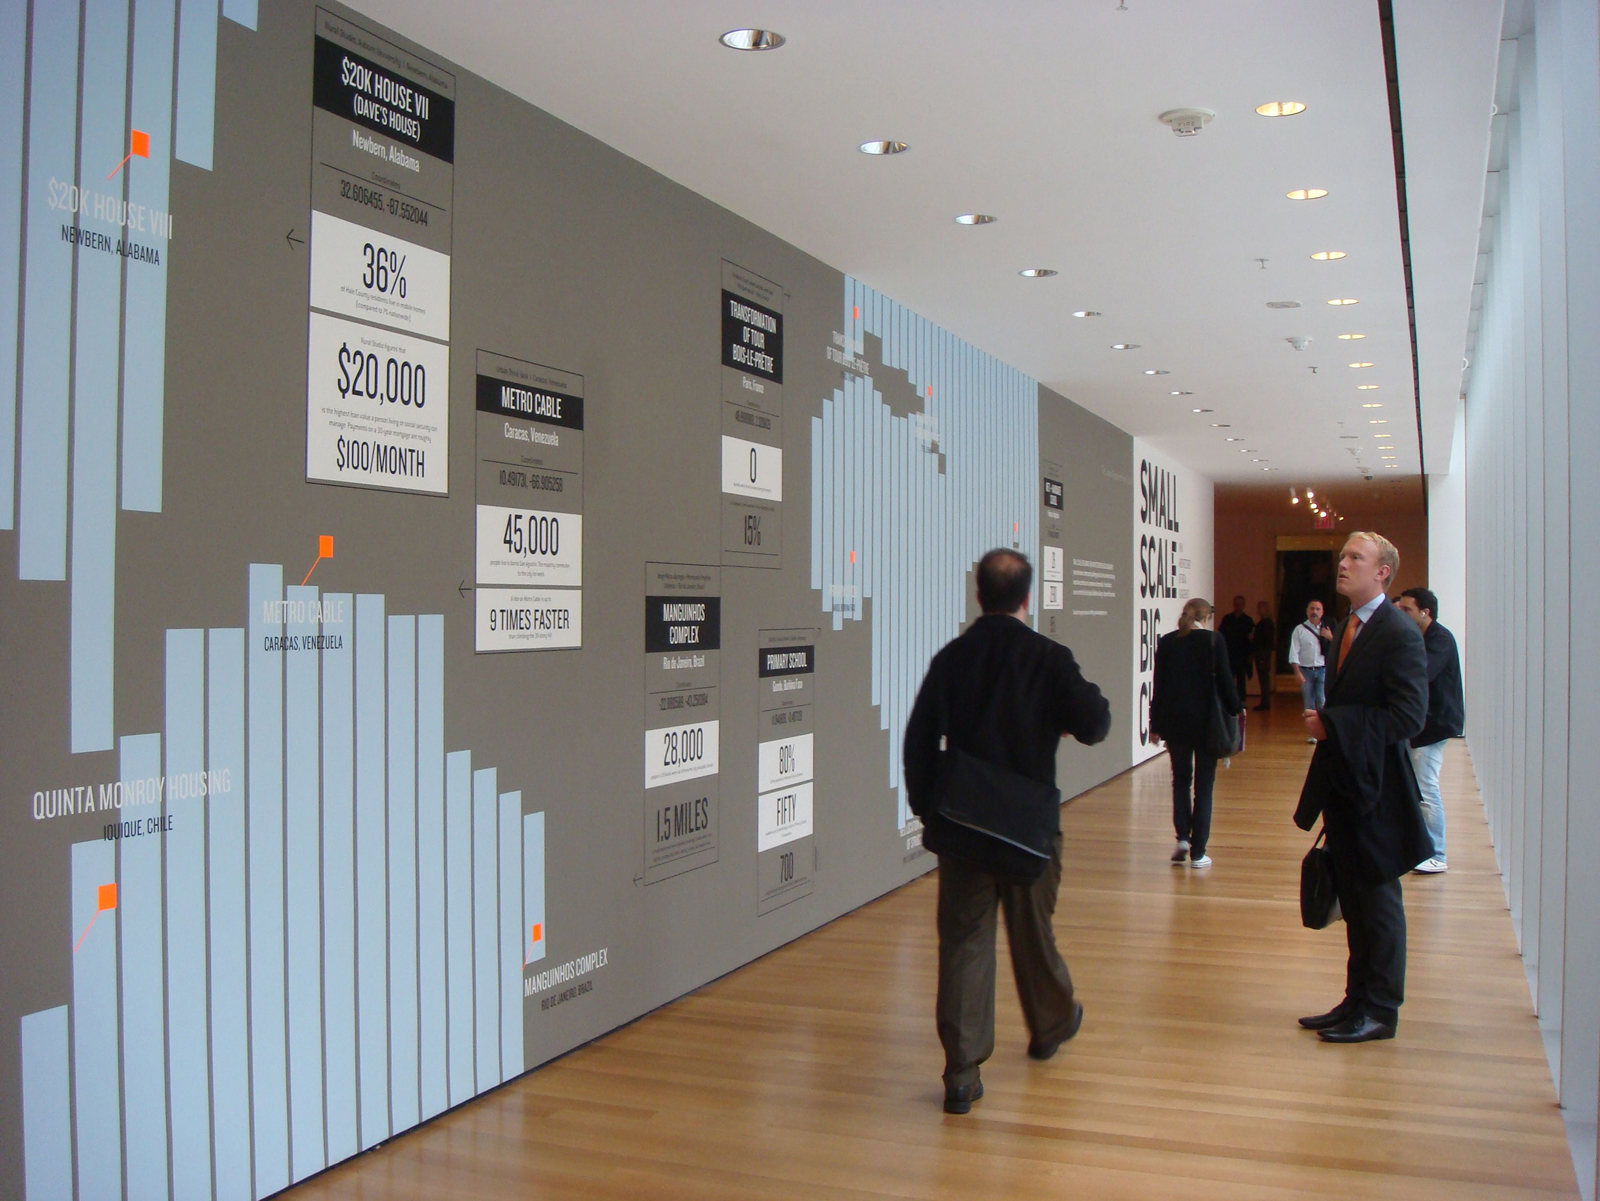 Upon entering Small Scale, Big Change, a graphic map of statistics introduces visitors to the exhibition's content.